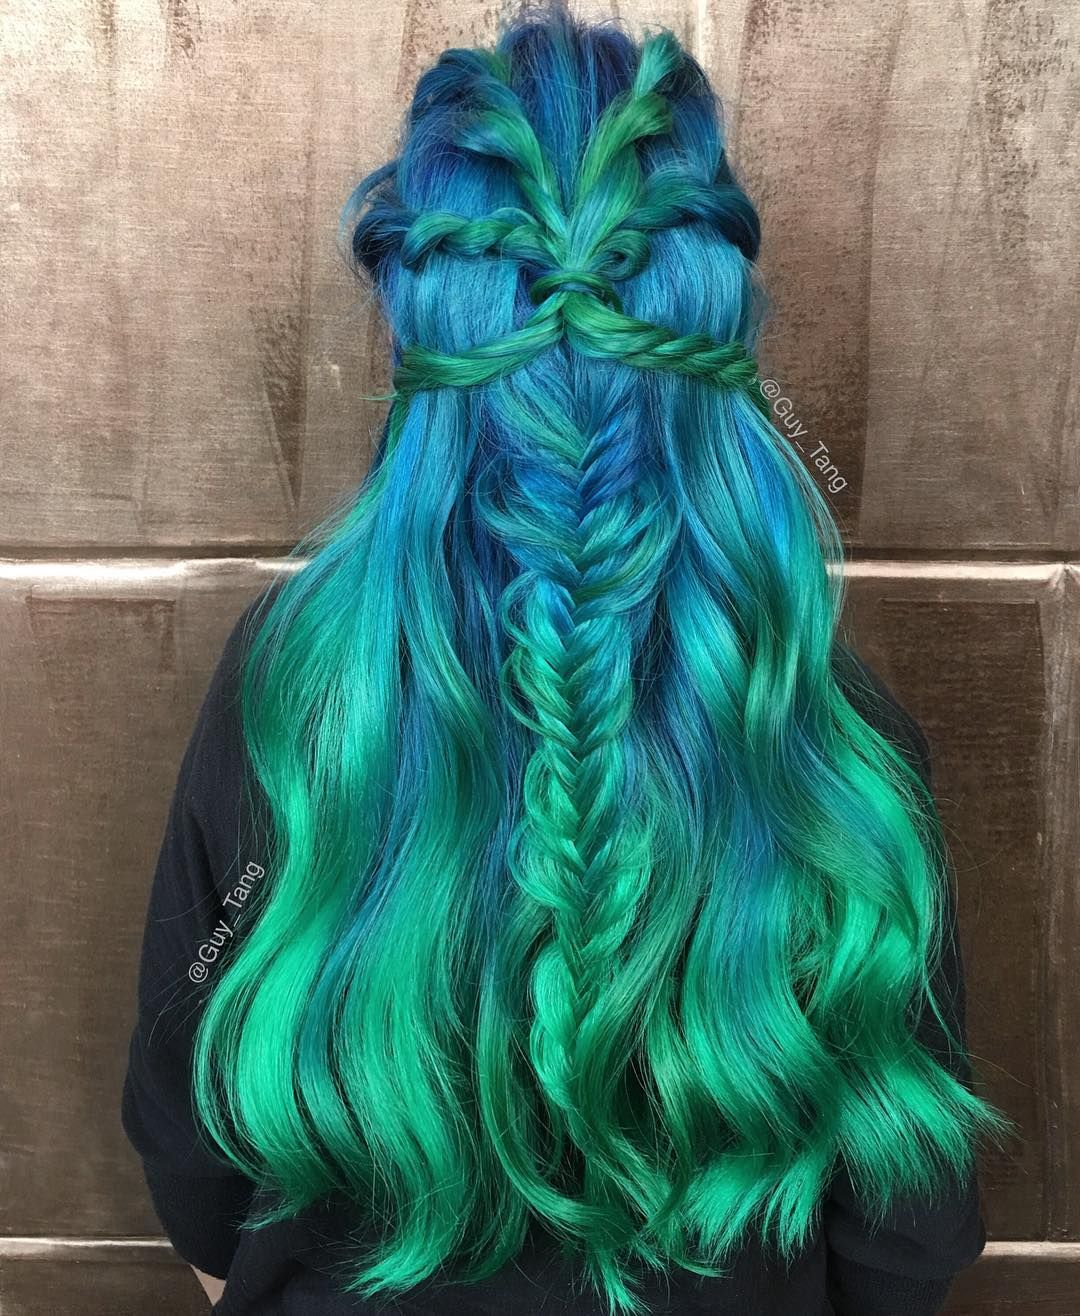 Mermaid Hair By Guy Tang Balayage Ombre Collection Pinterest